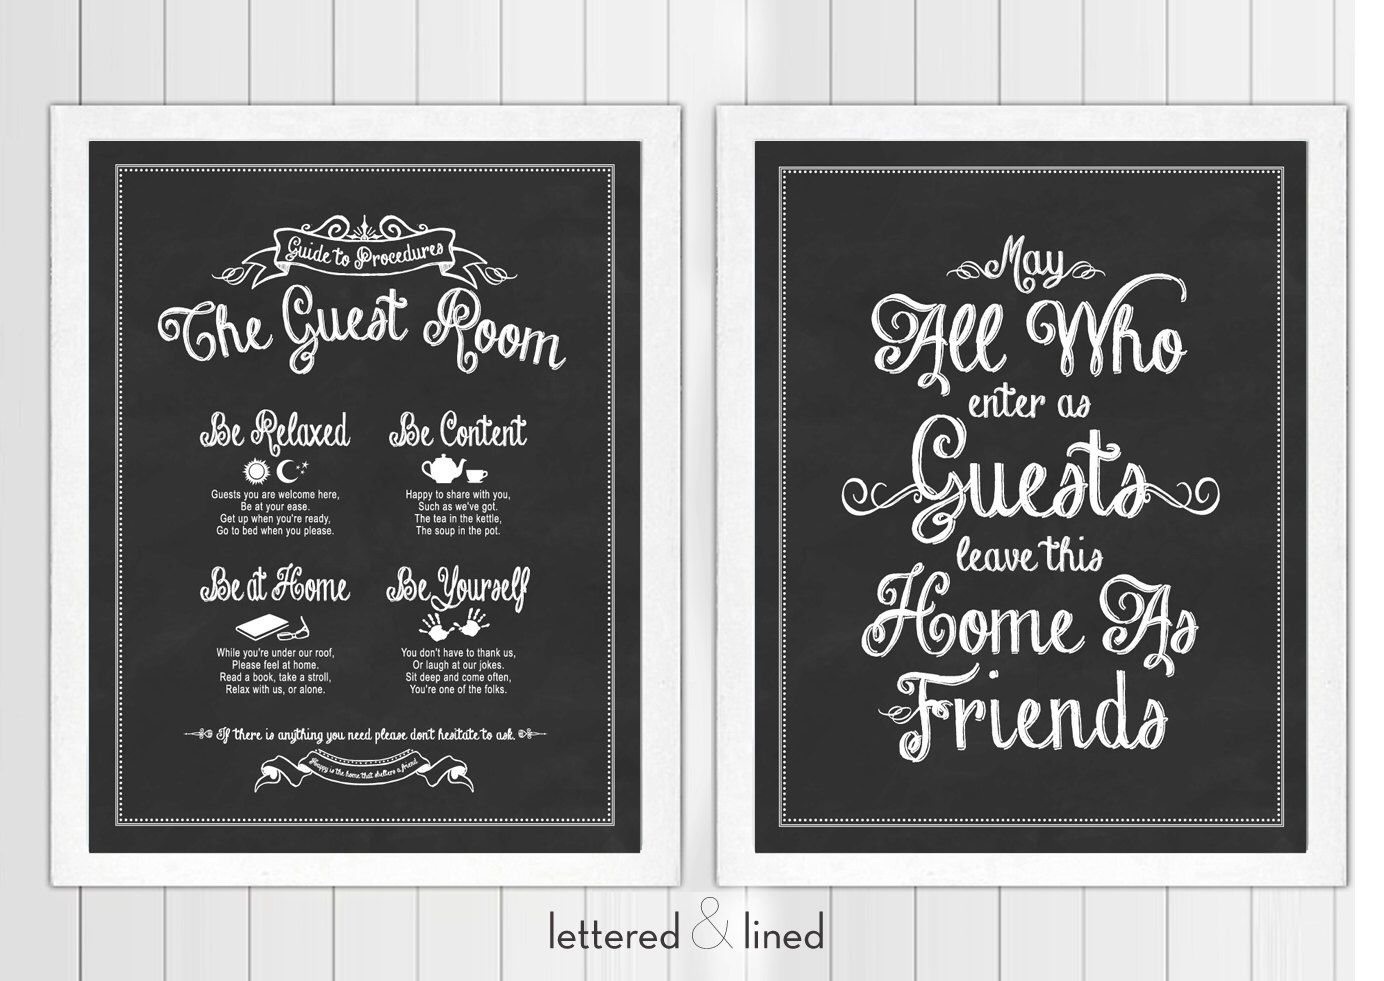 Guest Room Print Set: Guide To Procedures and May All Who Enter As Guests Leave As Friends - 11x14 print - Quote, Sign, Vintage, Decor, Art by letteredandlined on Etsy https://www.etsy.com/listing/160173607/guest-room-print-set-guide-to-procedures